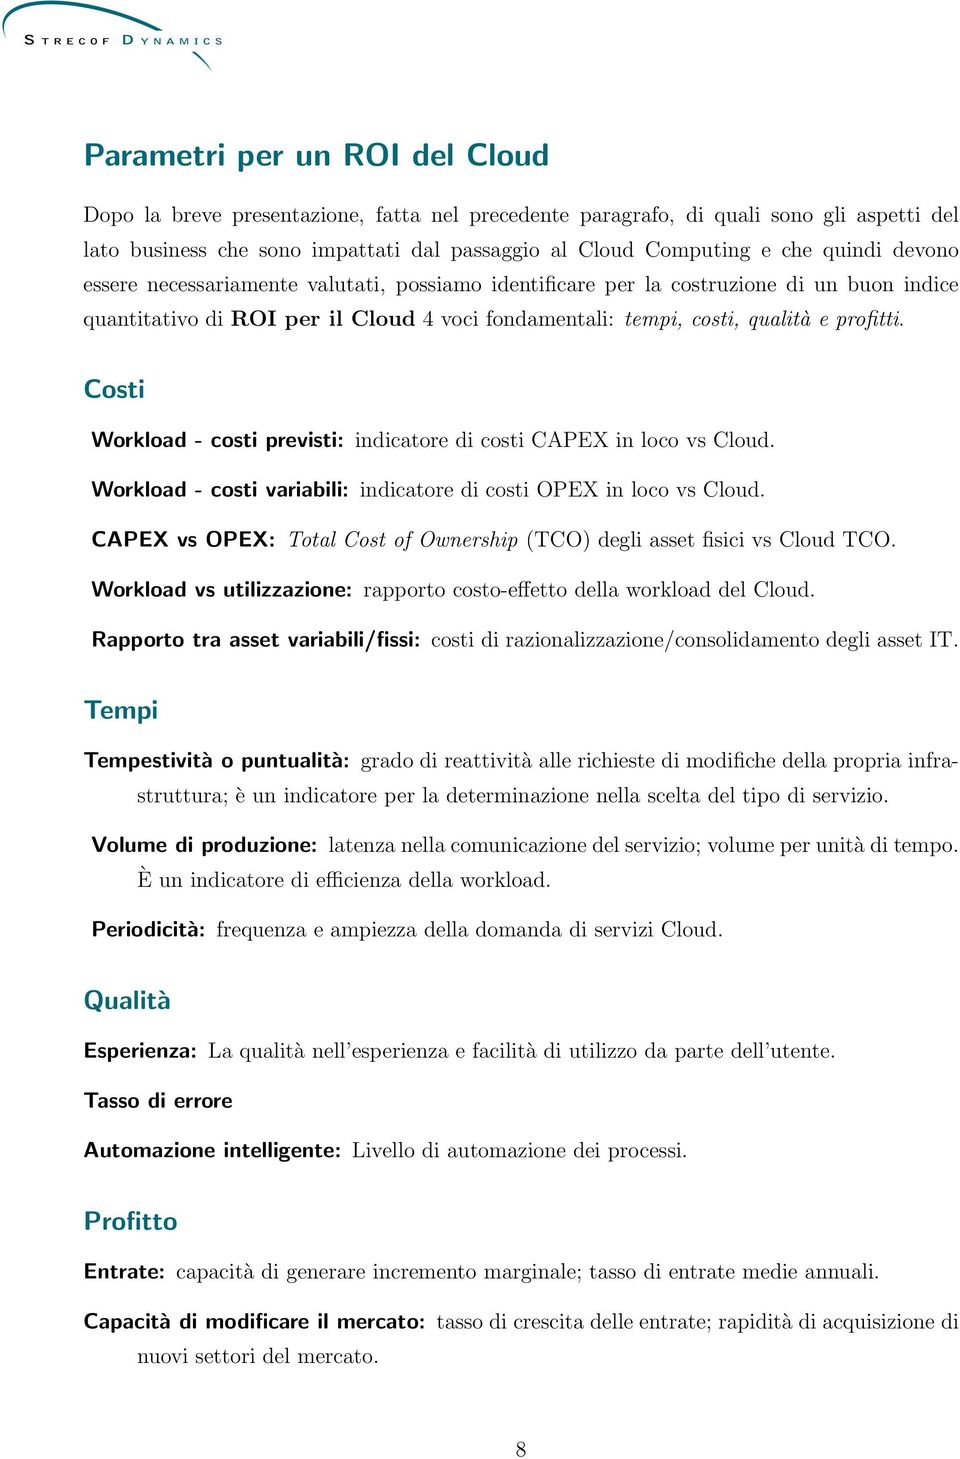 Costi Workload - costi previsti: indicatore di costi CAPEX in loco vs Cloud. Workload - costi variabili: indicatore di costi OPEX in loco vs Cloud.